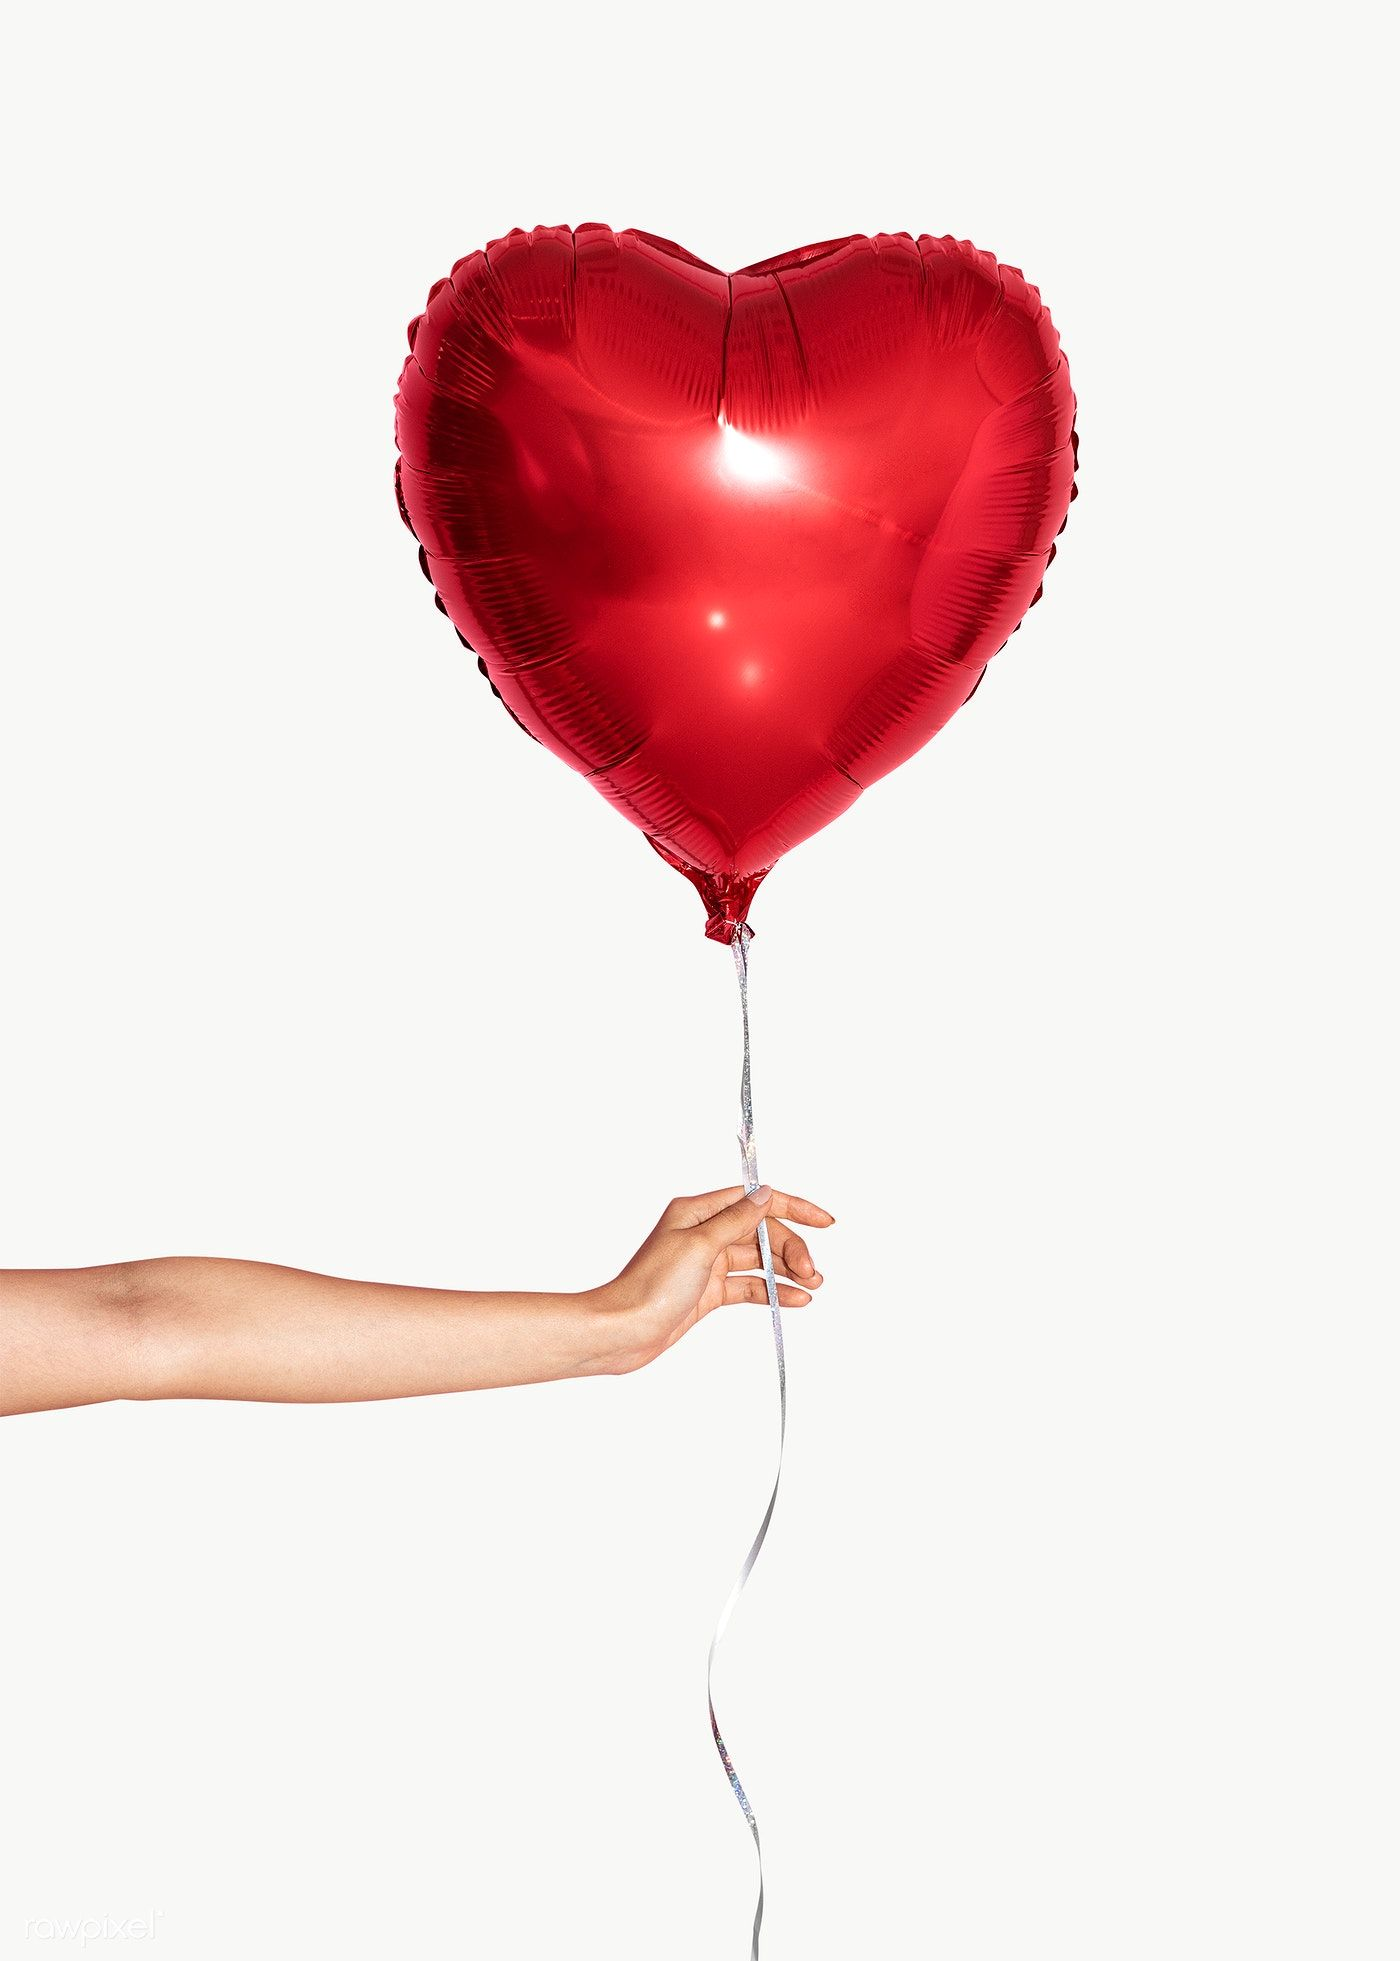 Red Heart Balloon Transparent Png Premium Image By Rawpixel Com Teddy Rawpixel Heart Balloons Balloons Black Balloons